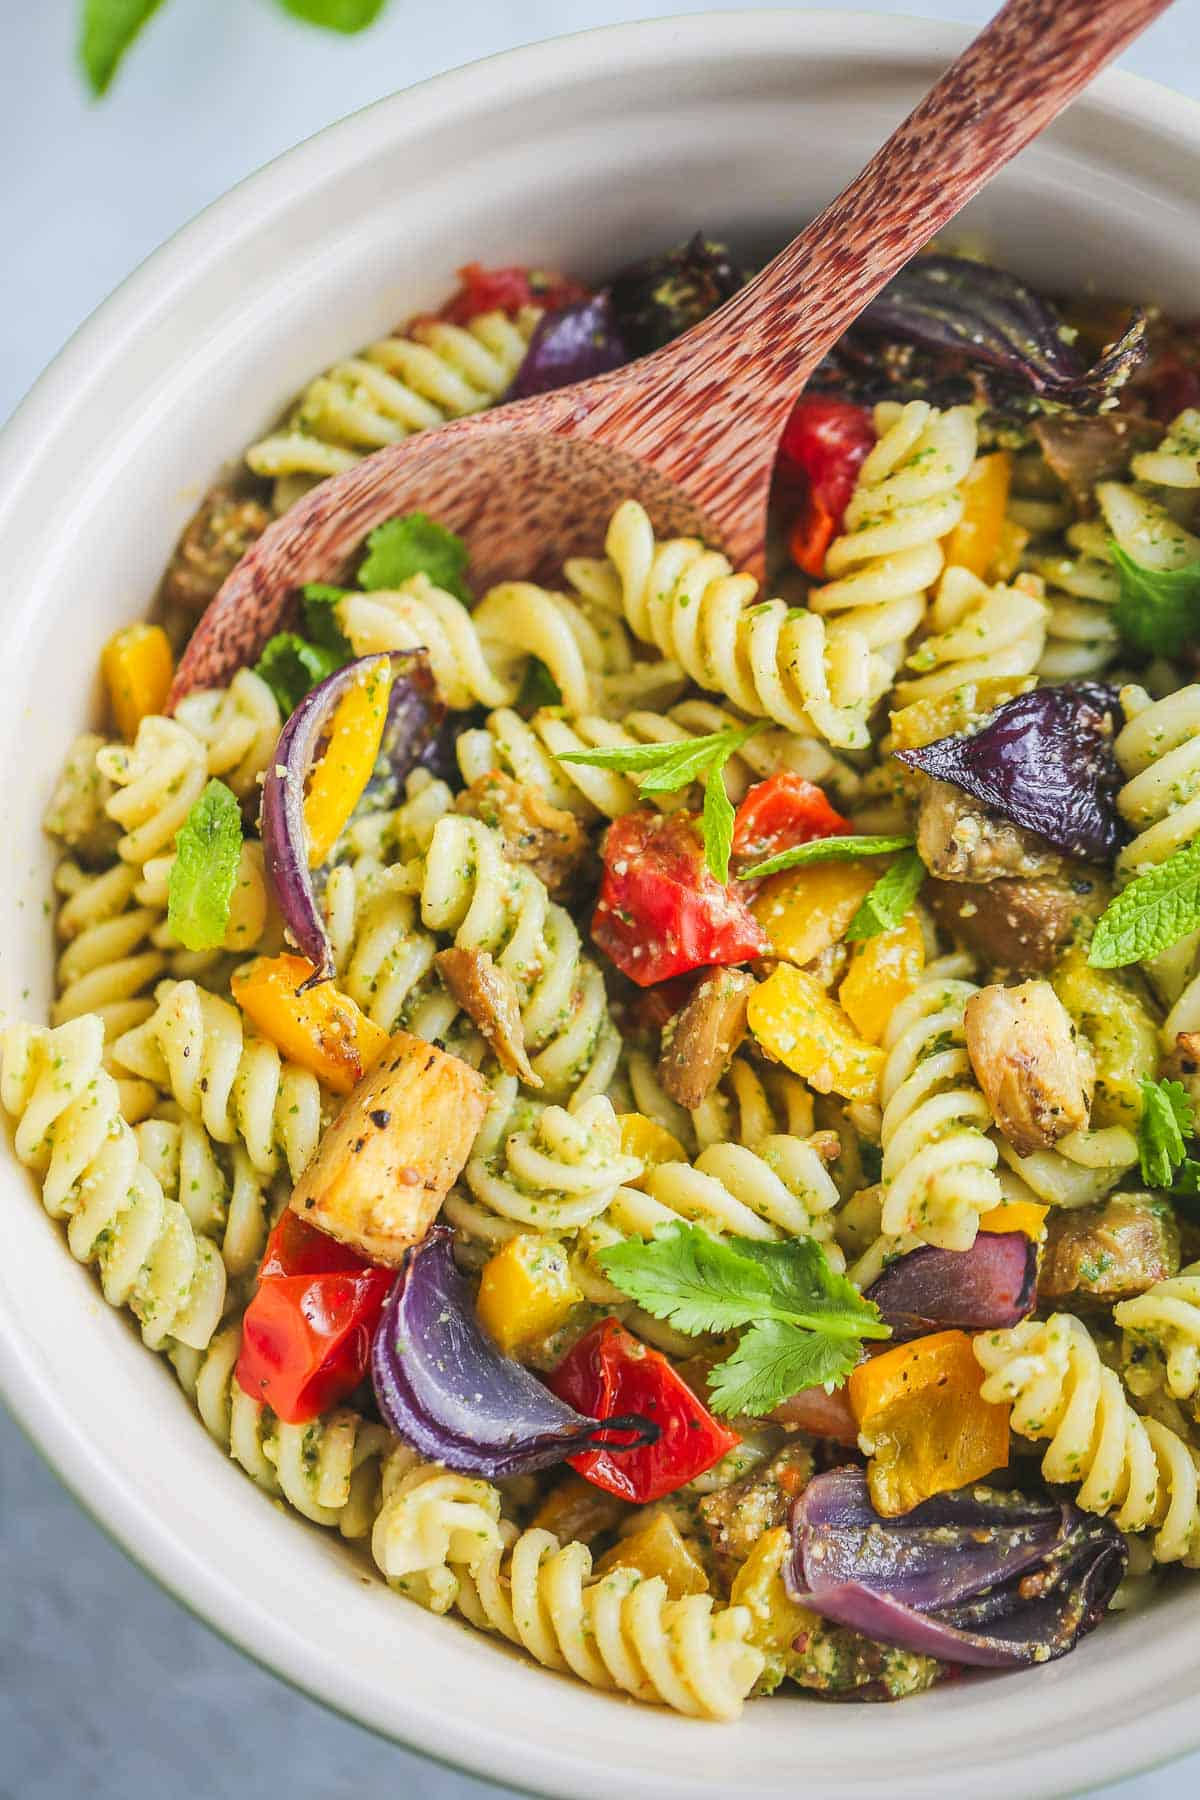 Vegan Pasta Salad served in a bowl, with a serving wooden spoon